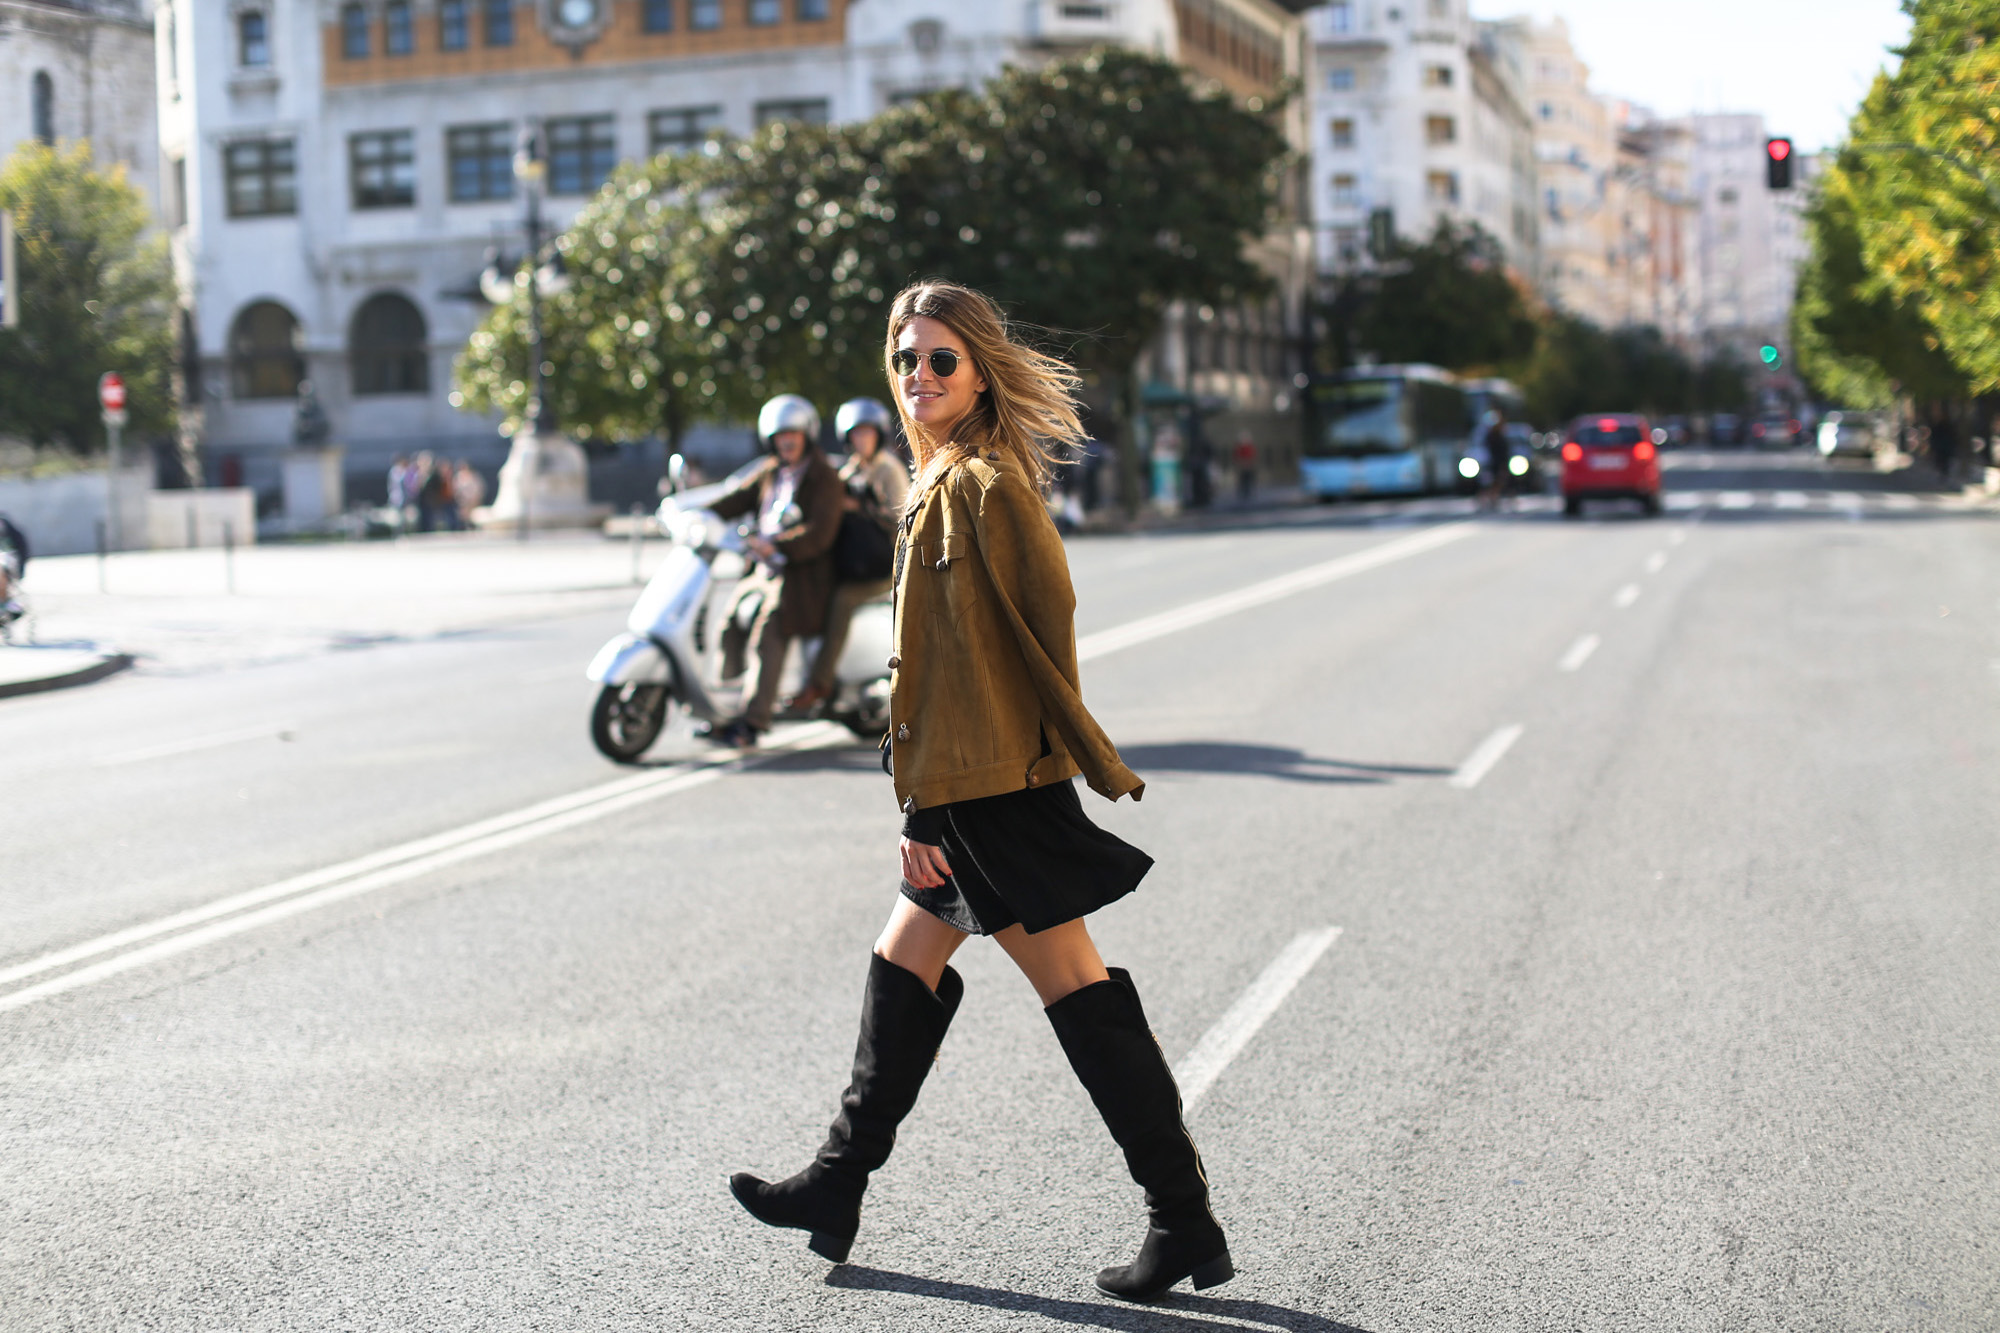 Clochet_streetstyle_suede_ankle_high_boots_boho_minidress-2